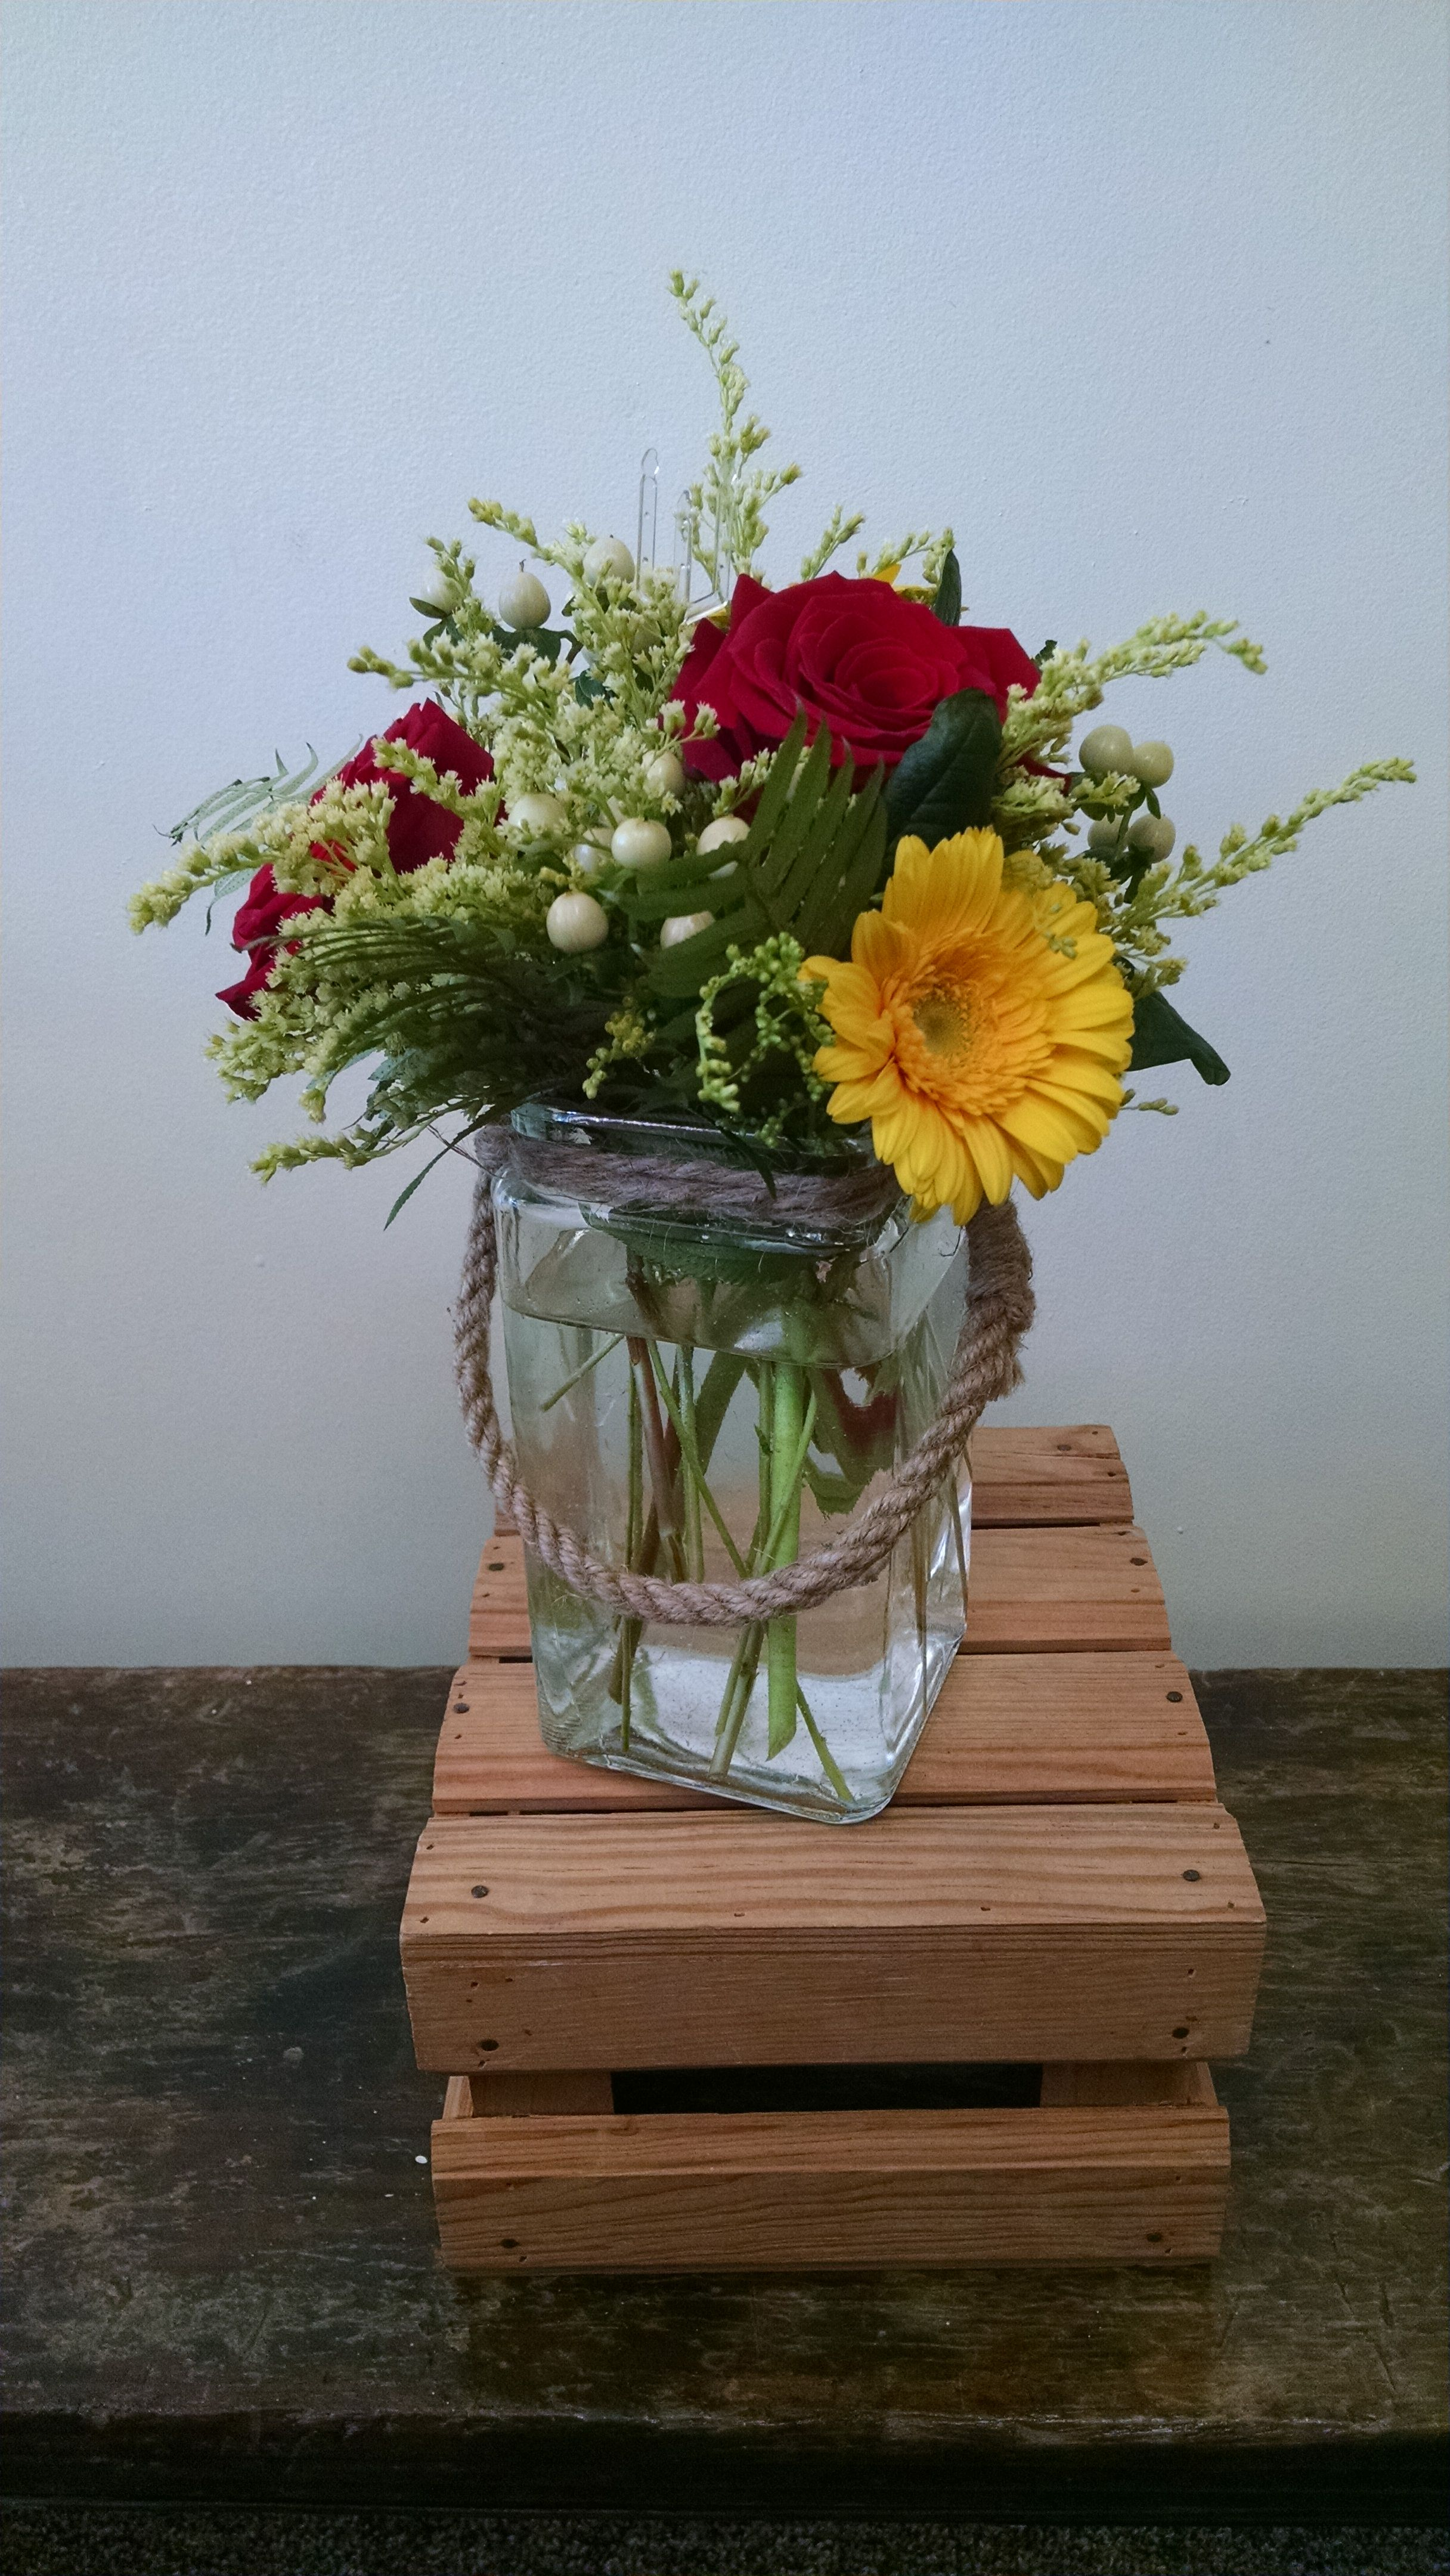 This arrangement features red roses, yellow Gerbera